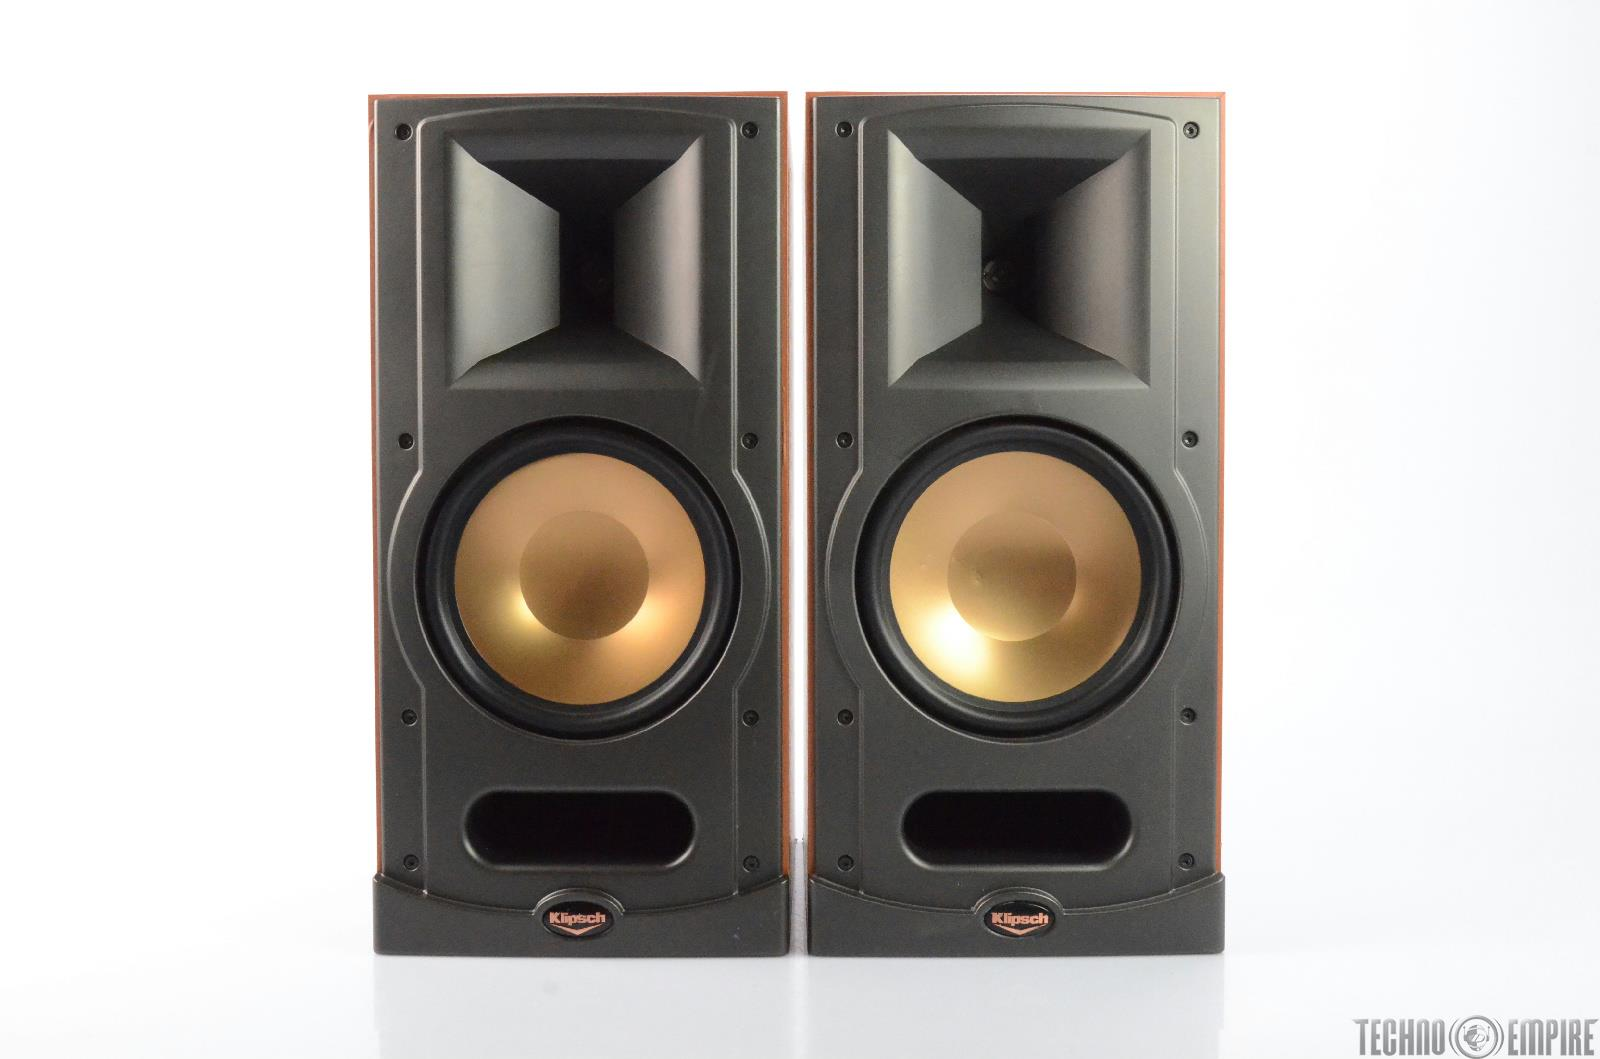 klipsch rb 81 bookshelf speakers cherry finish pair 27152 ebay. Black Bedroom Furniture Sets. Home Design Ideas